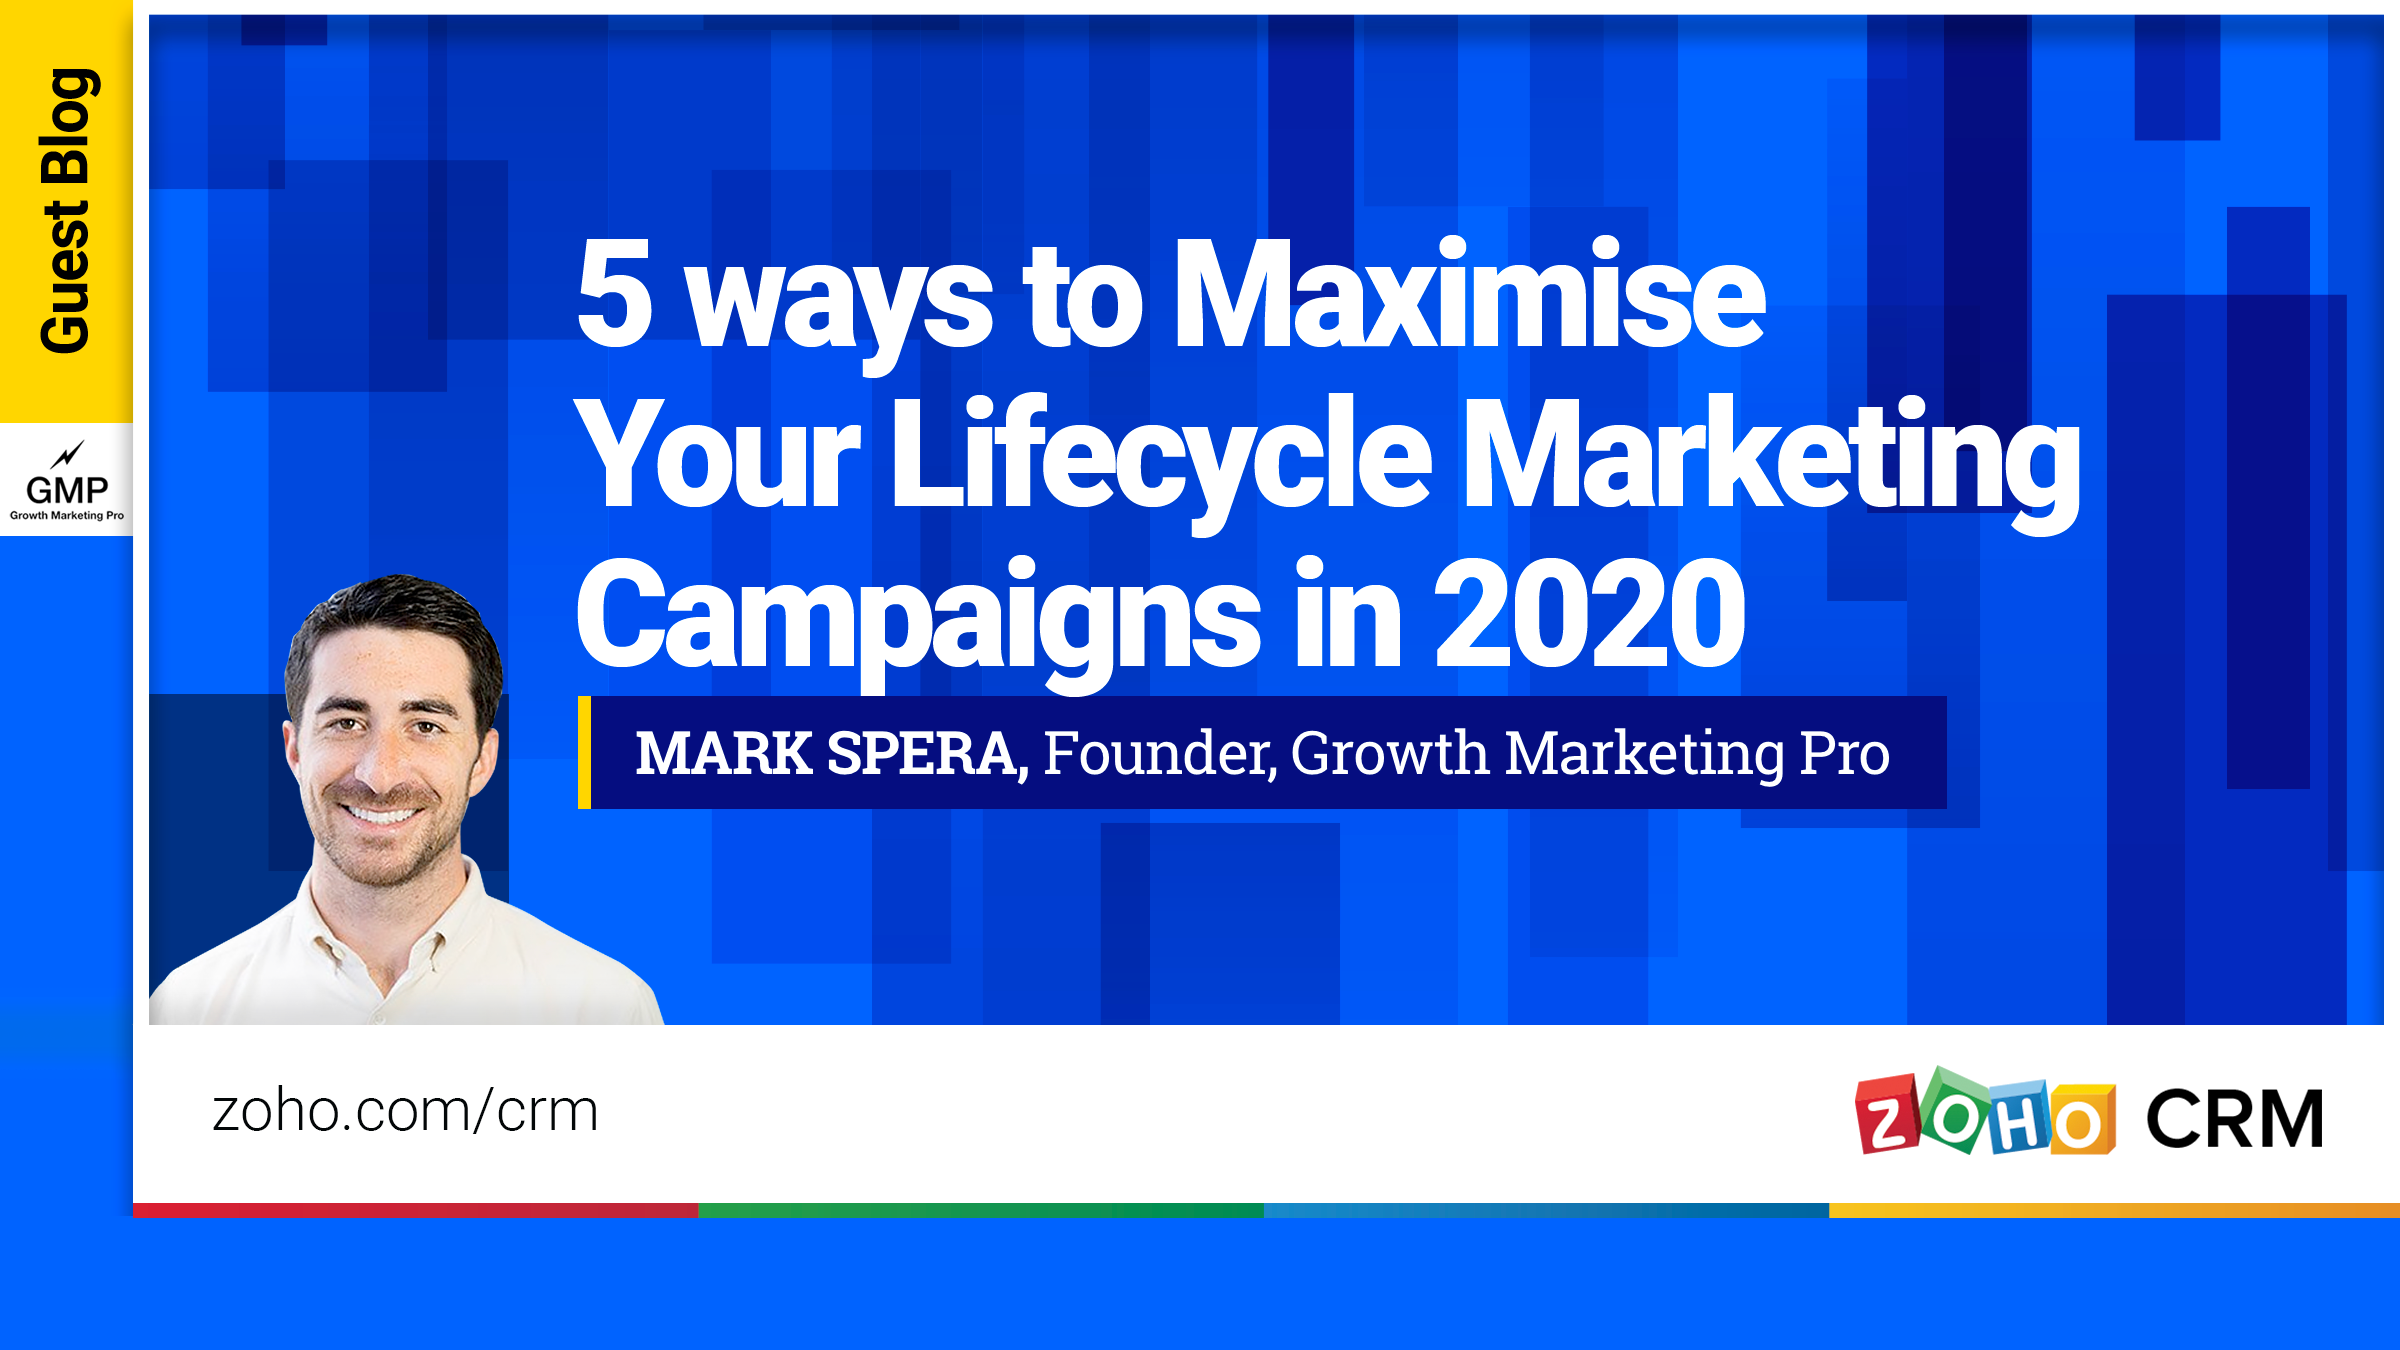 5 Ways to Maximize Your Lifecycle Marketing Campaigns in 2020